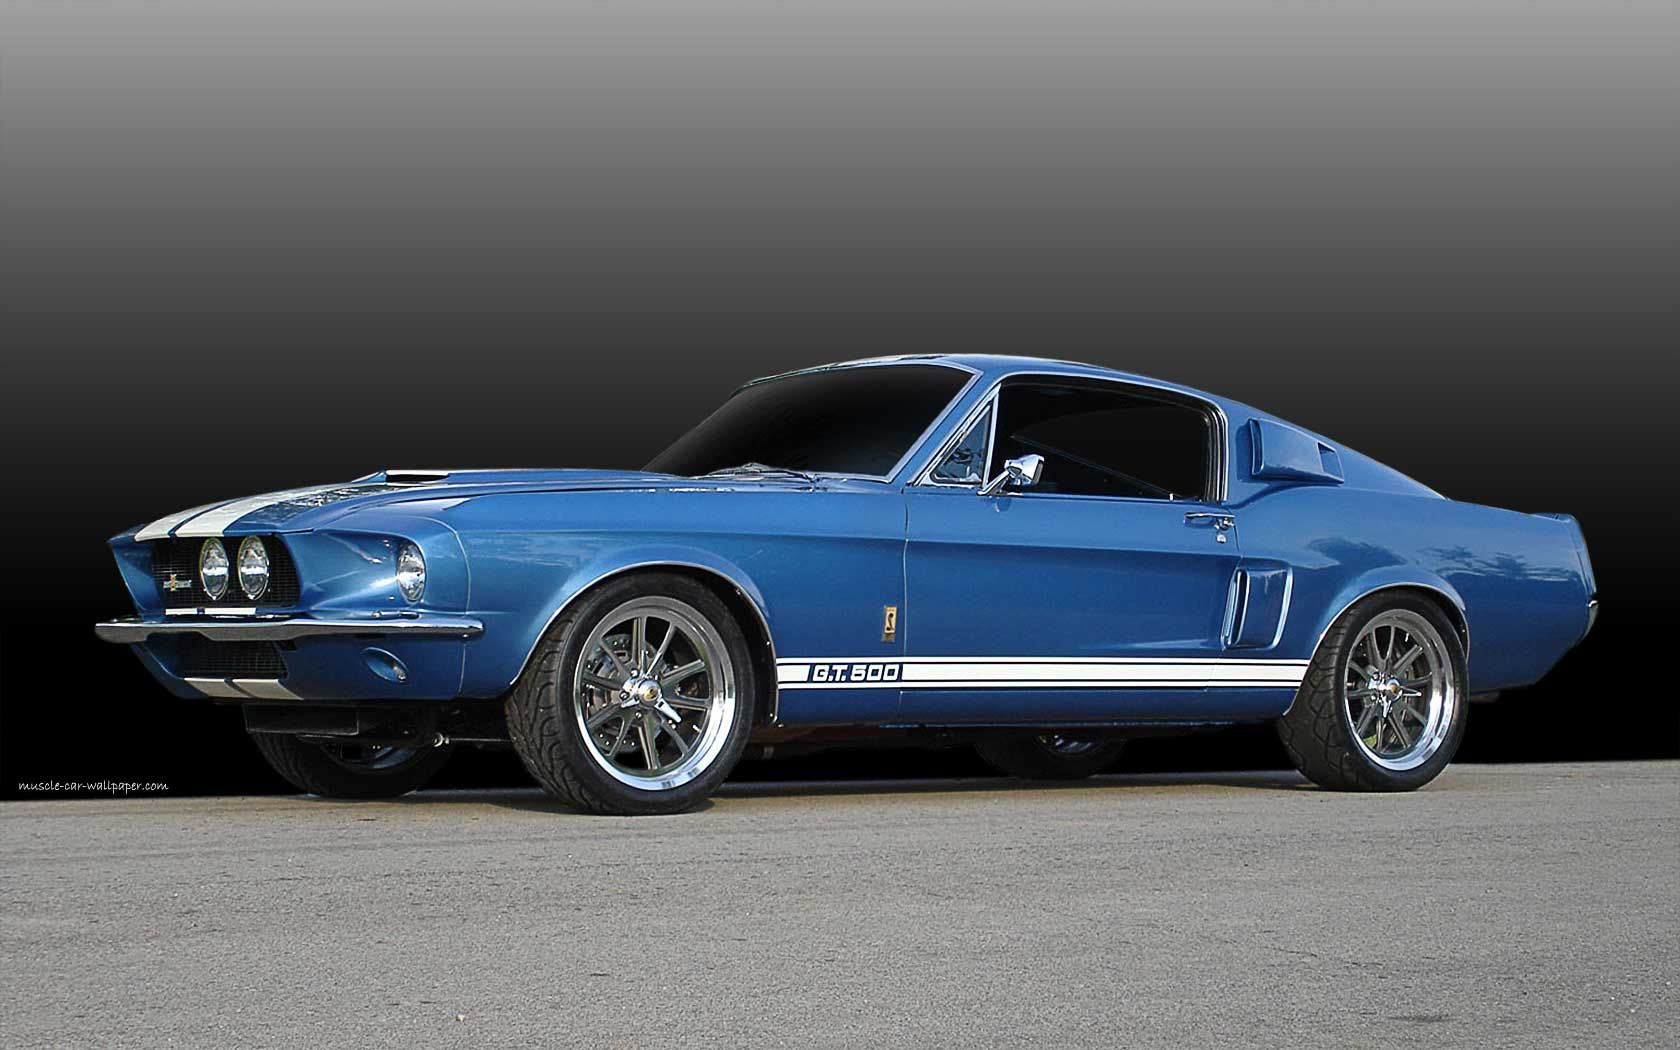 1967 Ford Mustang Shelby Gt500 Muscle Belle Voiture Voiture